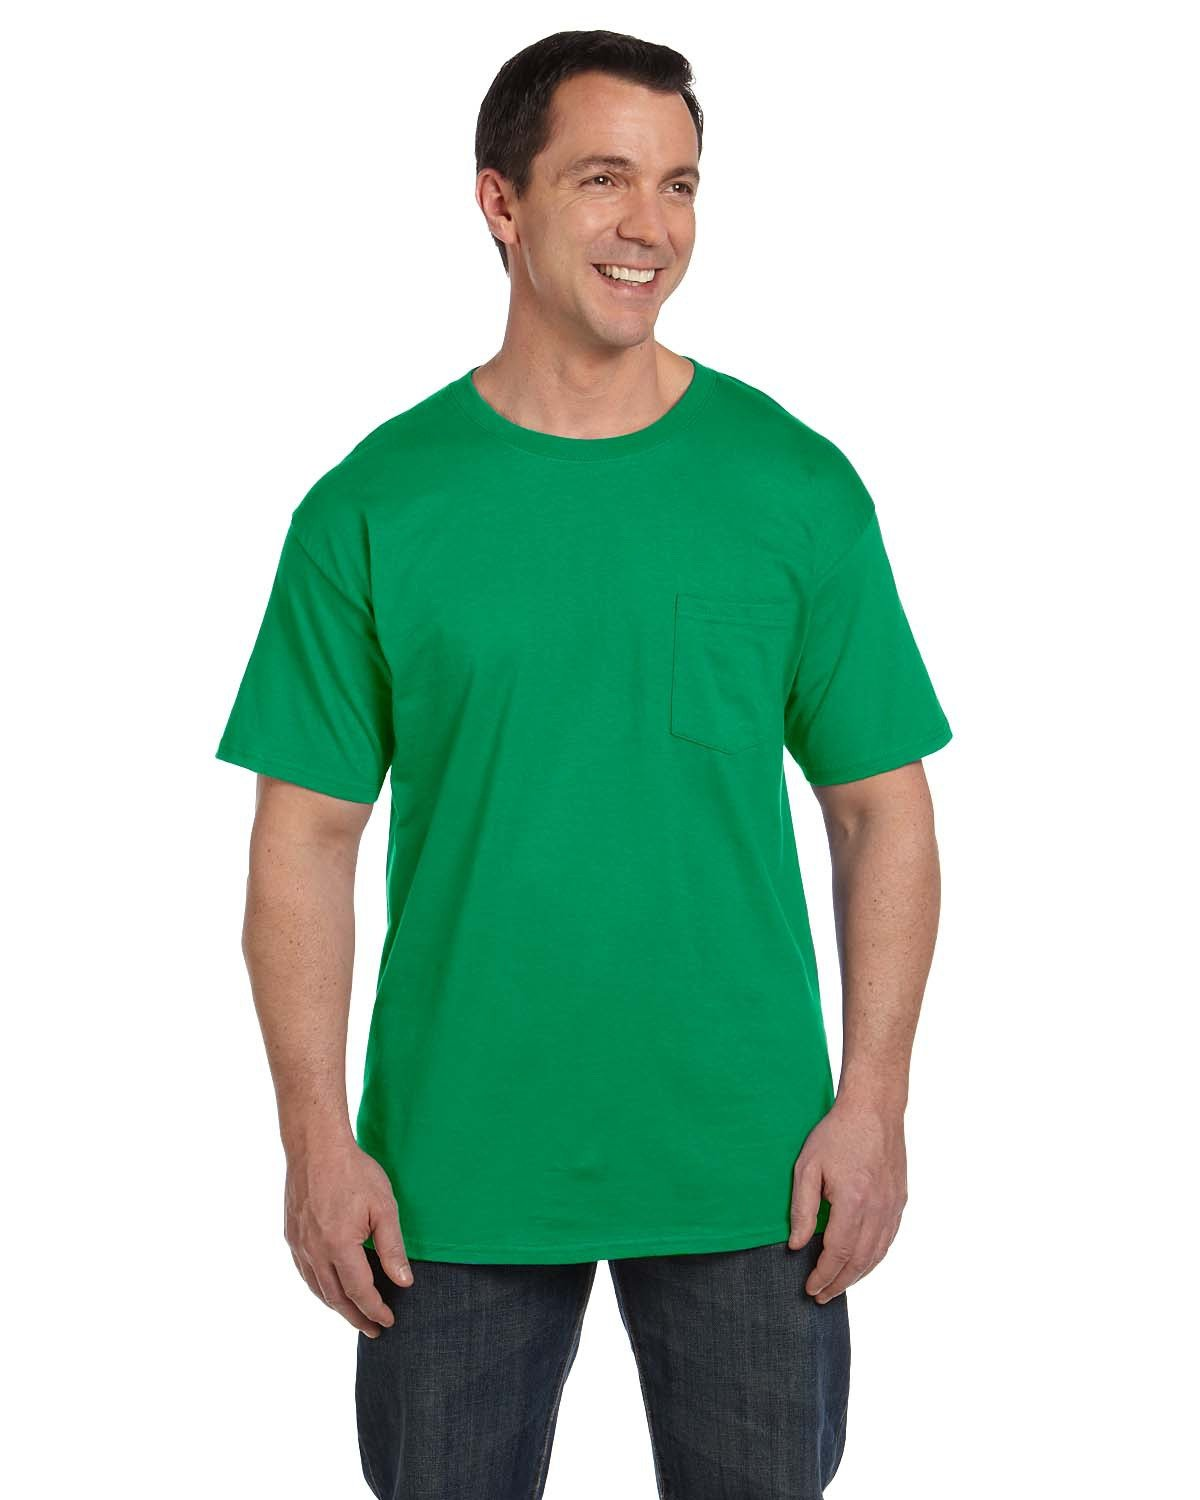 Hanes Adult Beefy-T® with Pocket KELLY GREEN